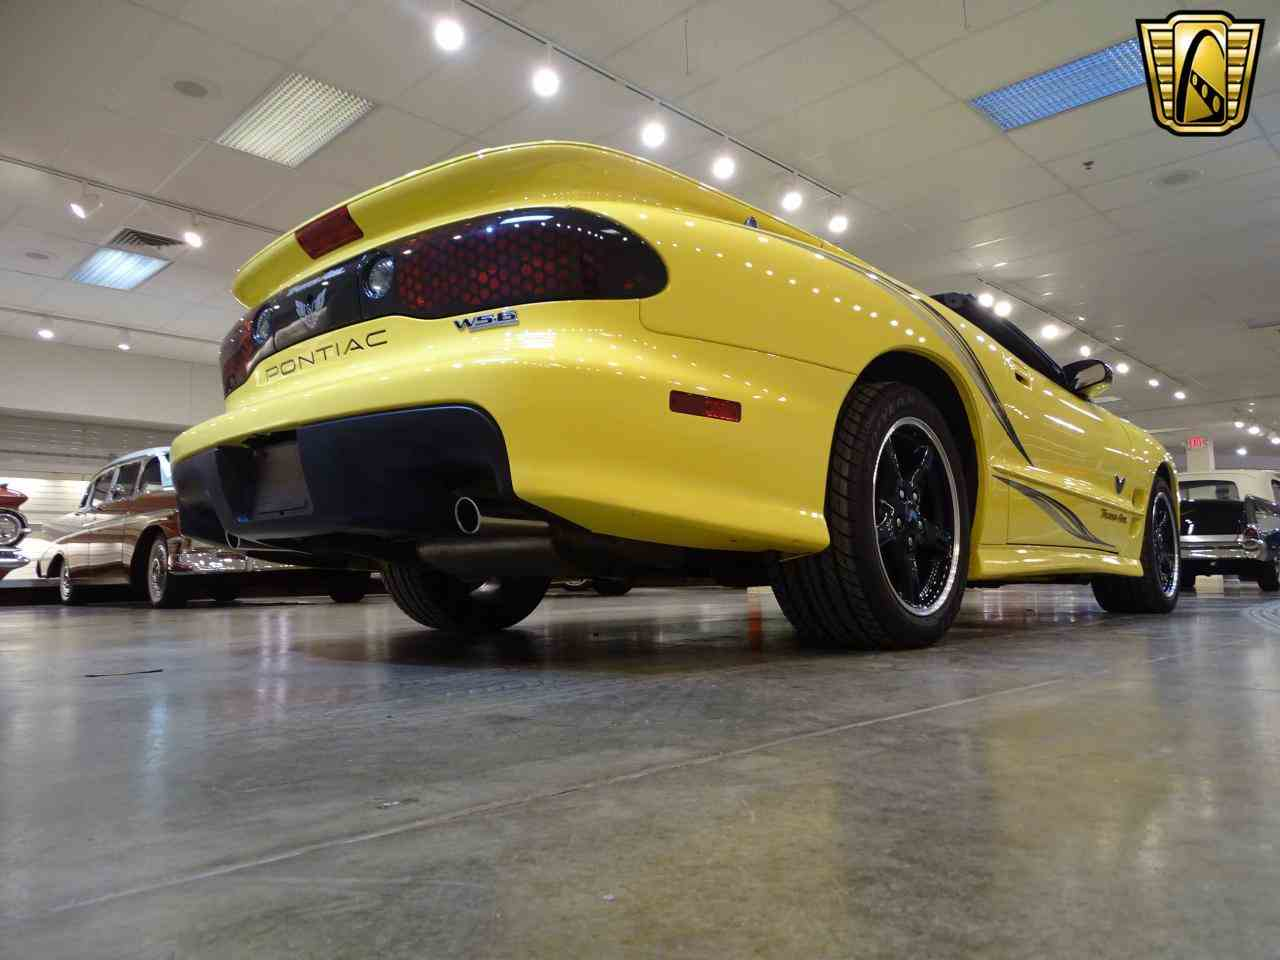 Large Picture of '02 Pontiac Firebird - $32,995.00 - KE64